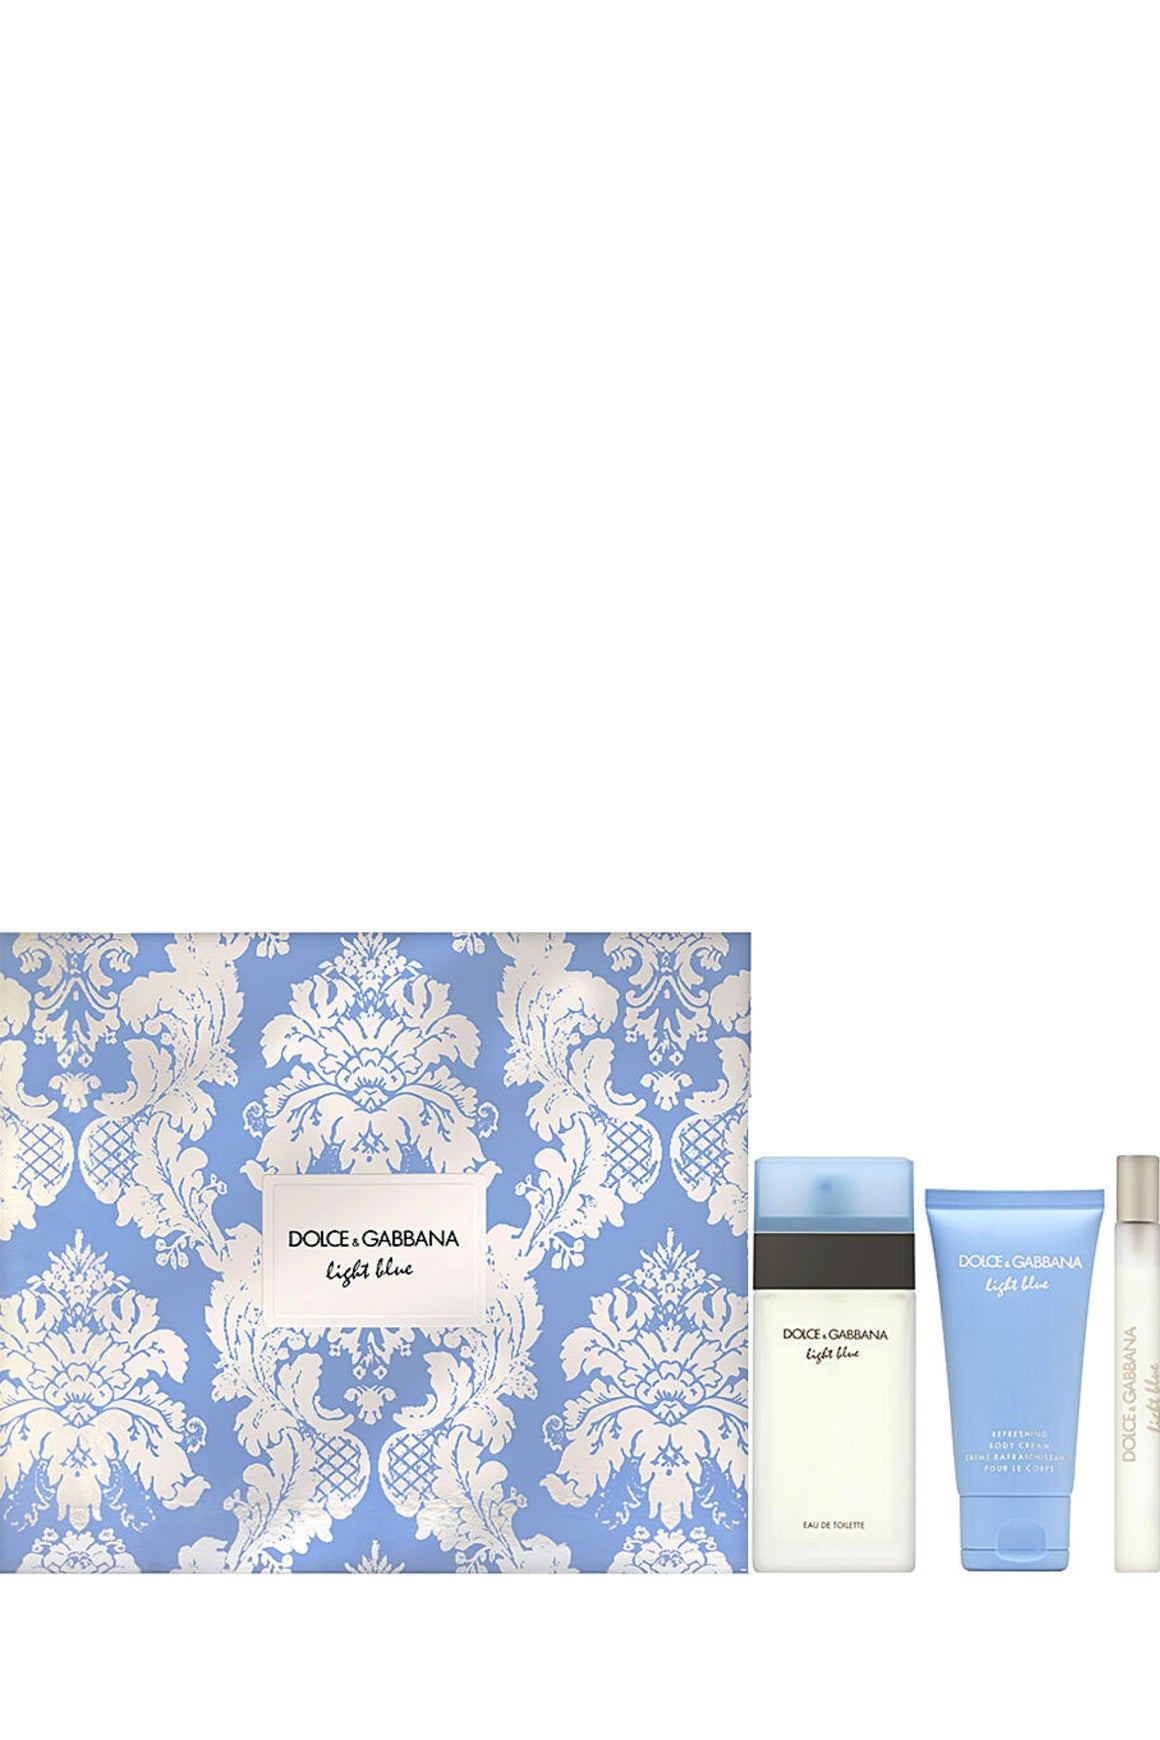 Dolce & Gabbana | Light Blue EDT 3 Piece Gift Set